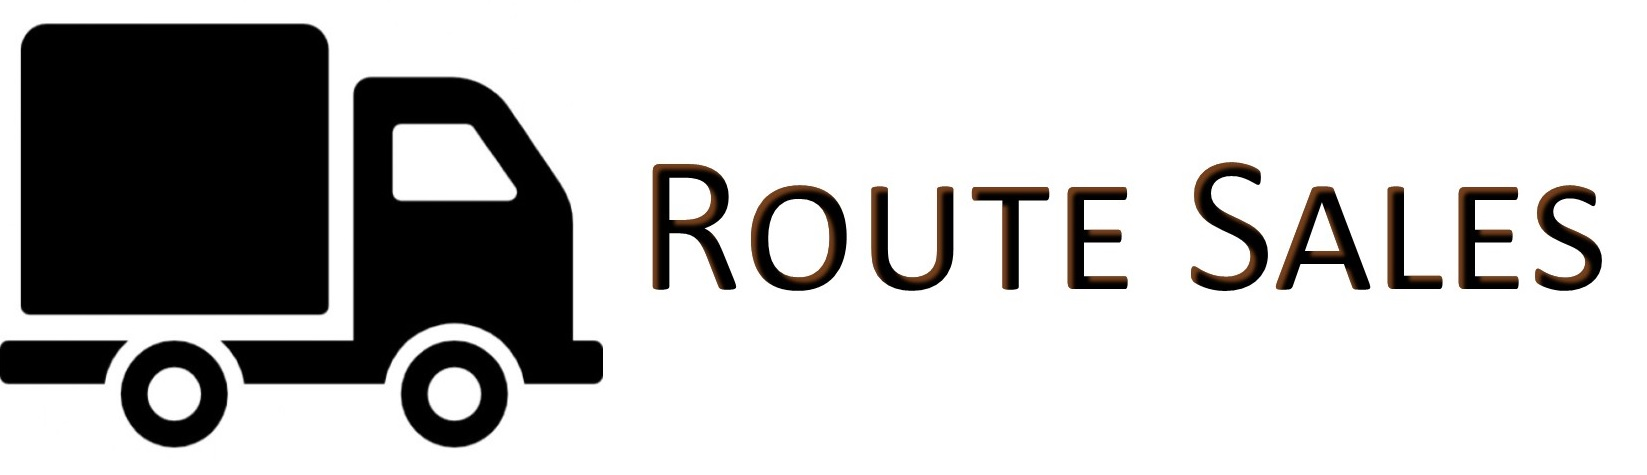 Route Sales Software